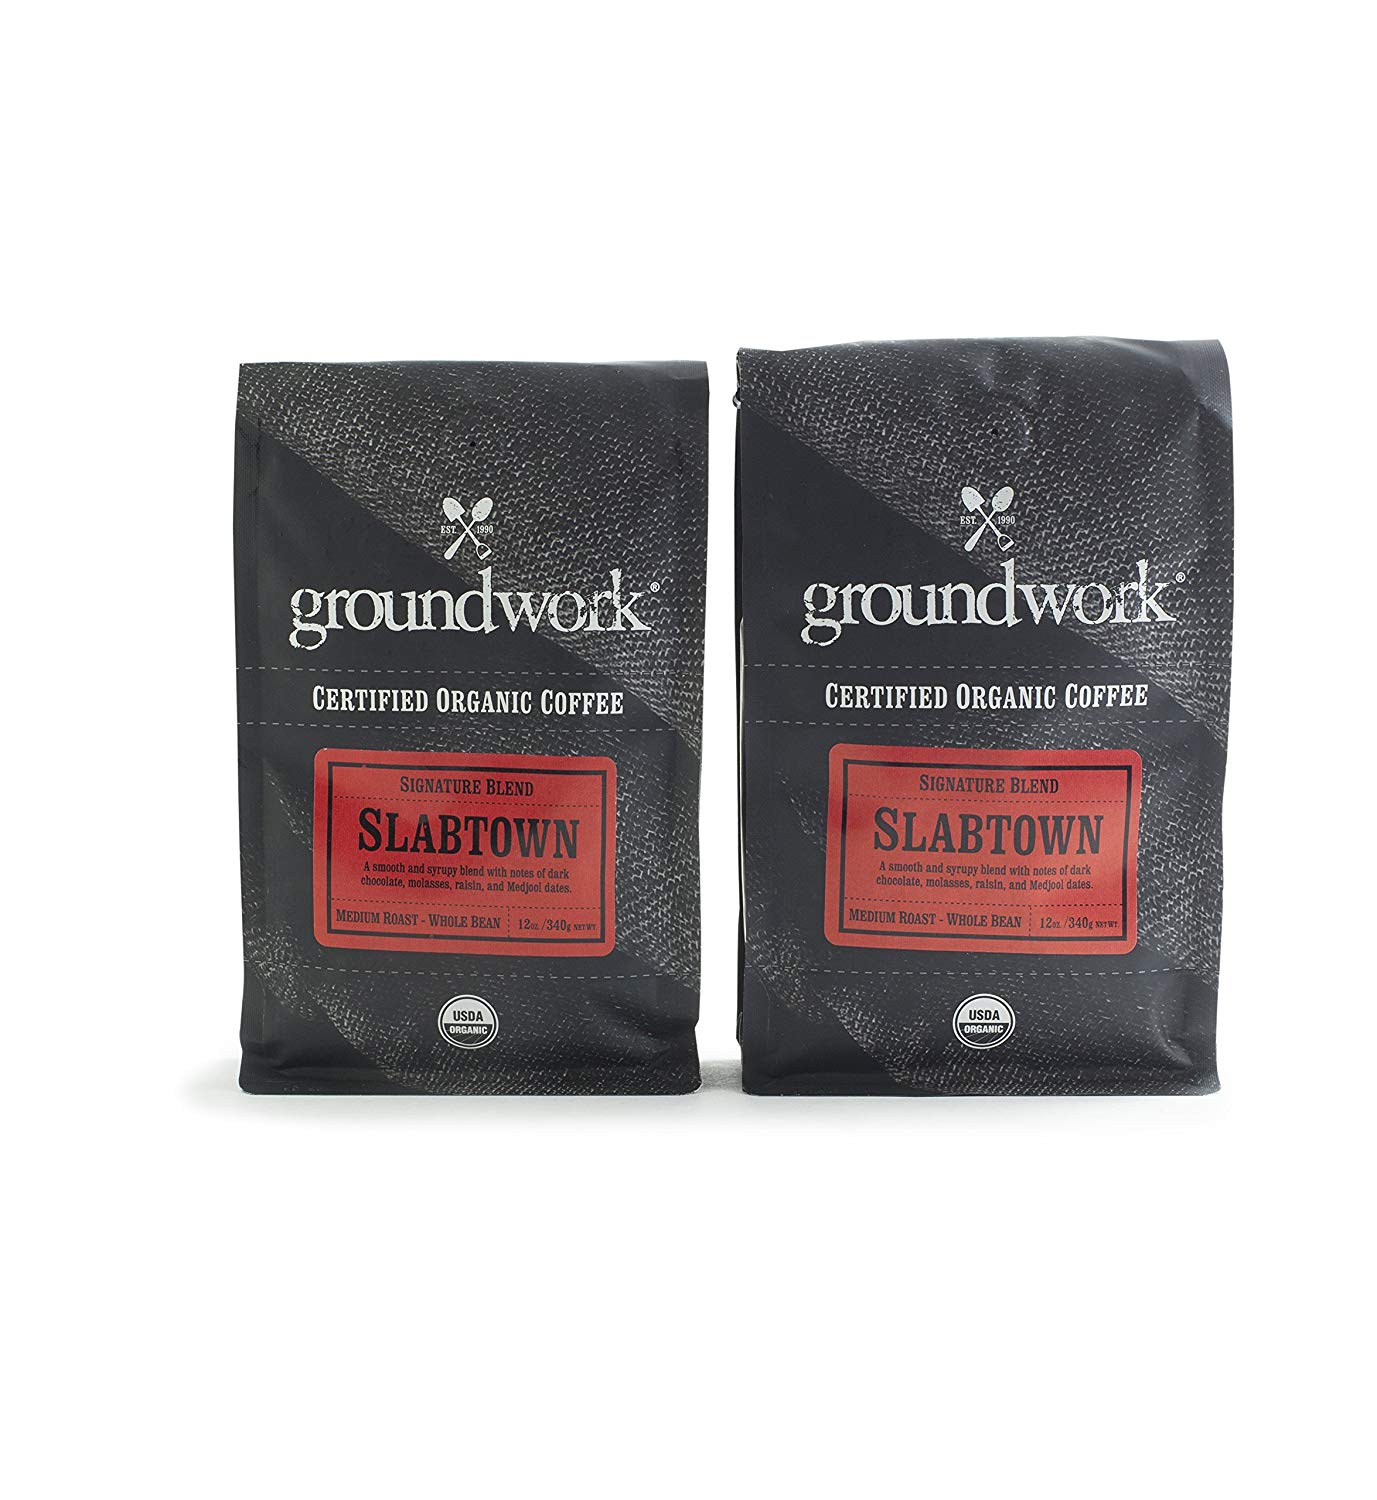 Groundwork Slabtown Organic Coffee (12oz) 2-Pack